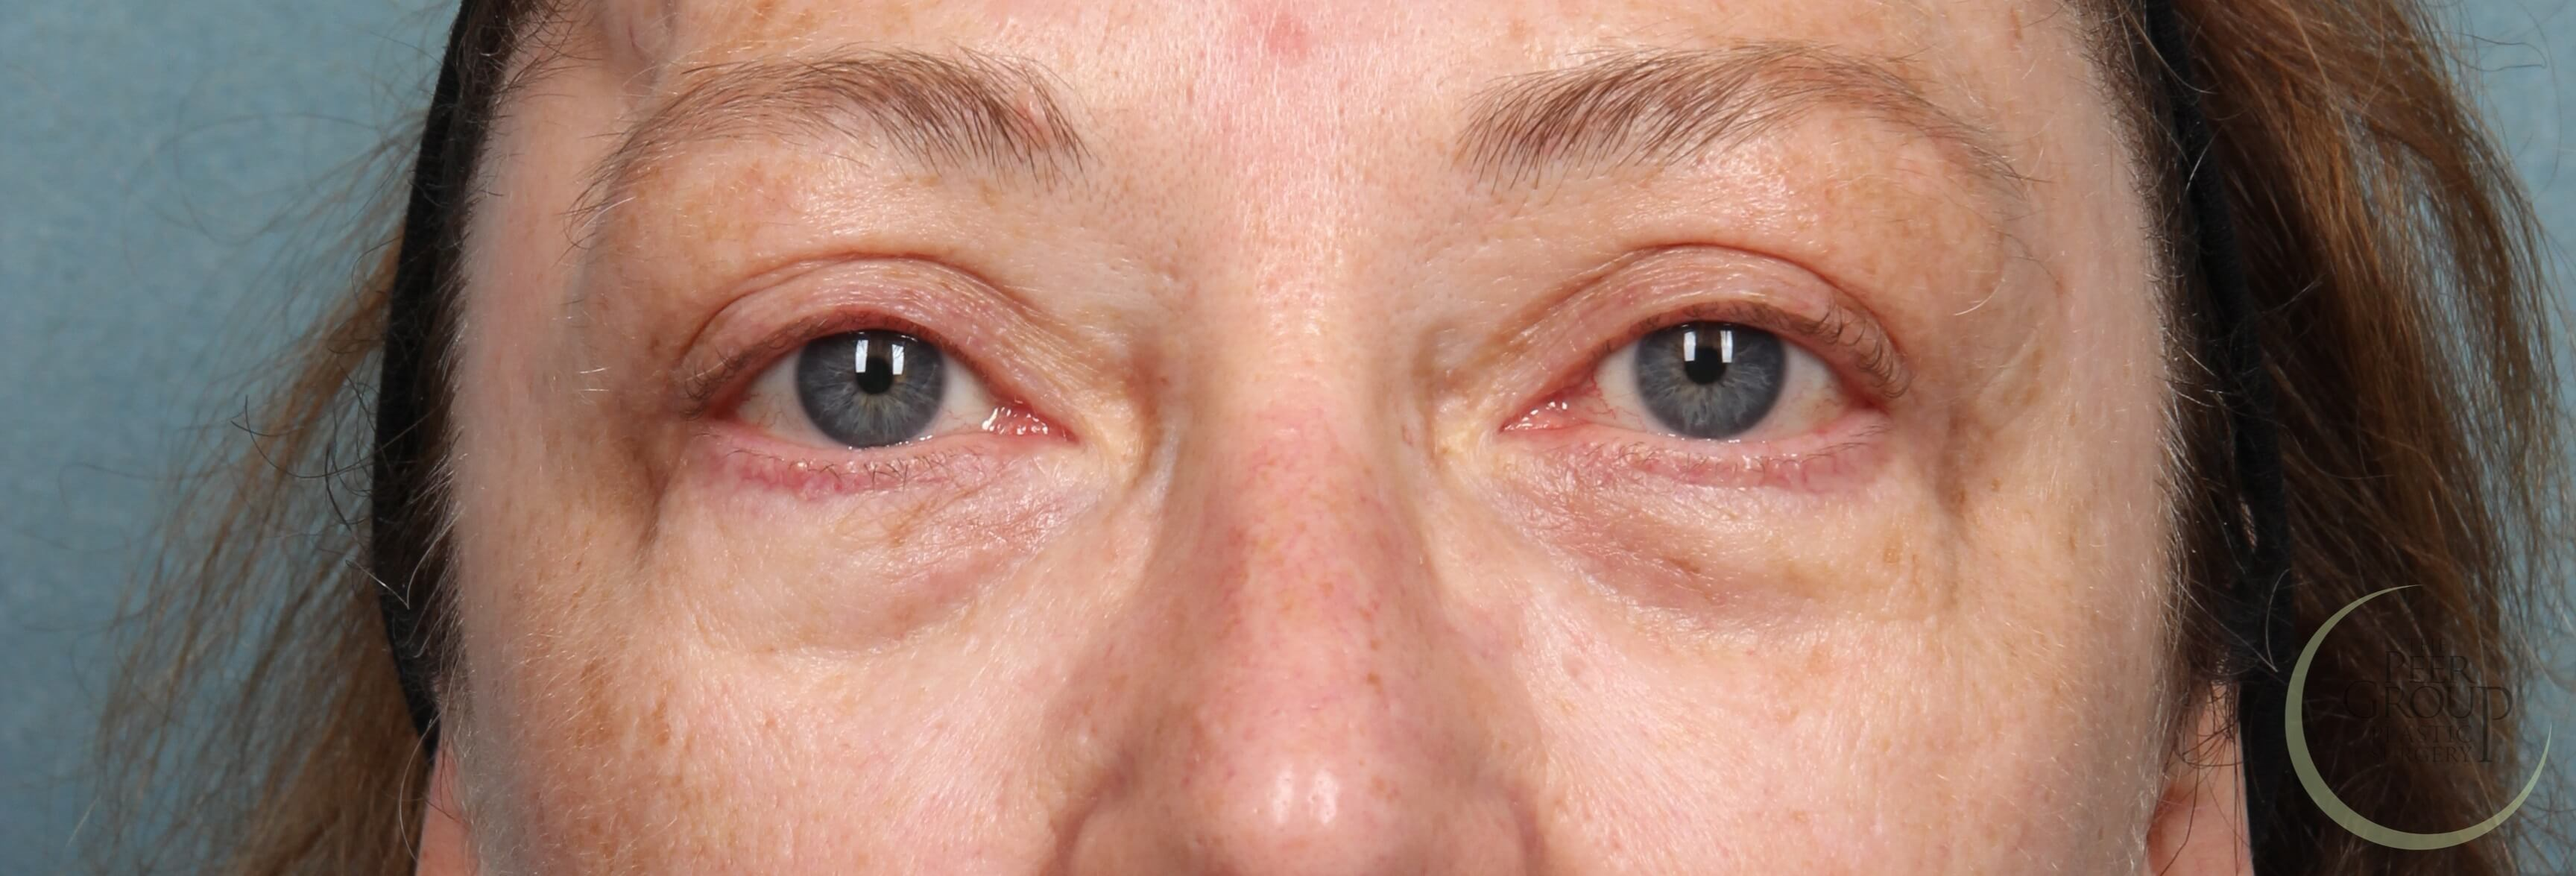 New Jersey Eyelid Lift After Upper Eyelid Lift